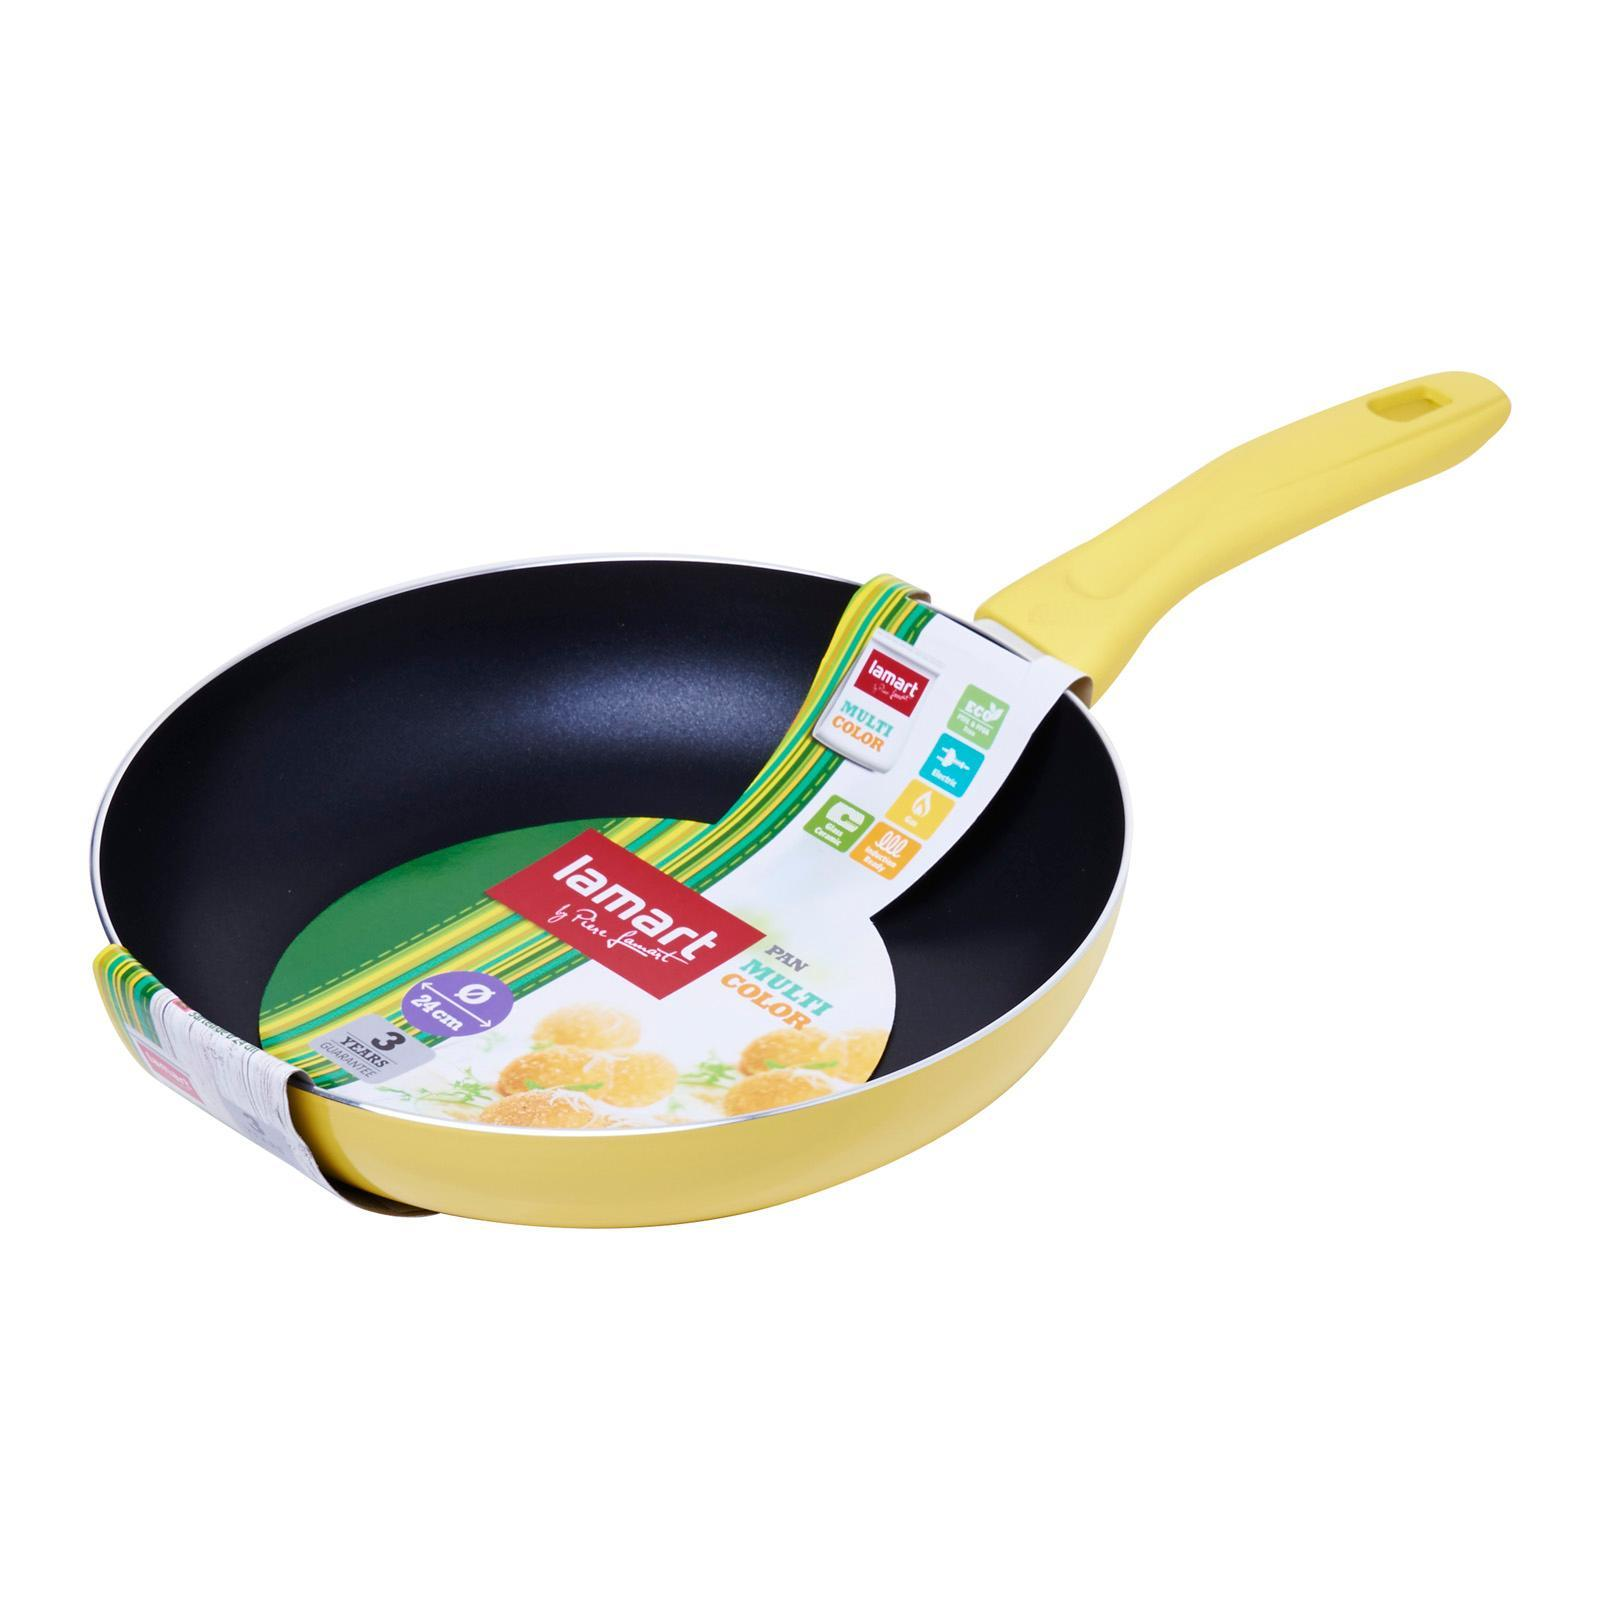 Lamart Induction Ready Non-Stick Fry Pan 24X4.7Cm - Yellow